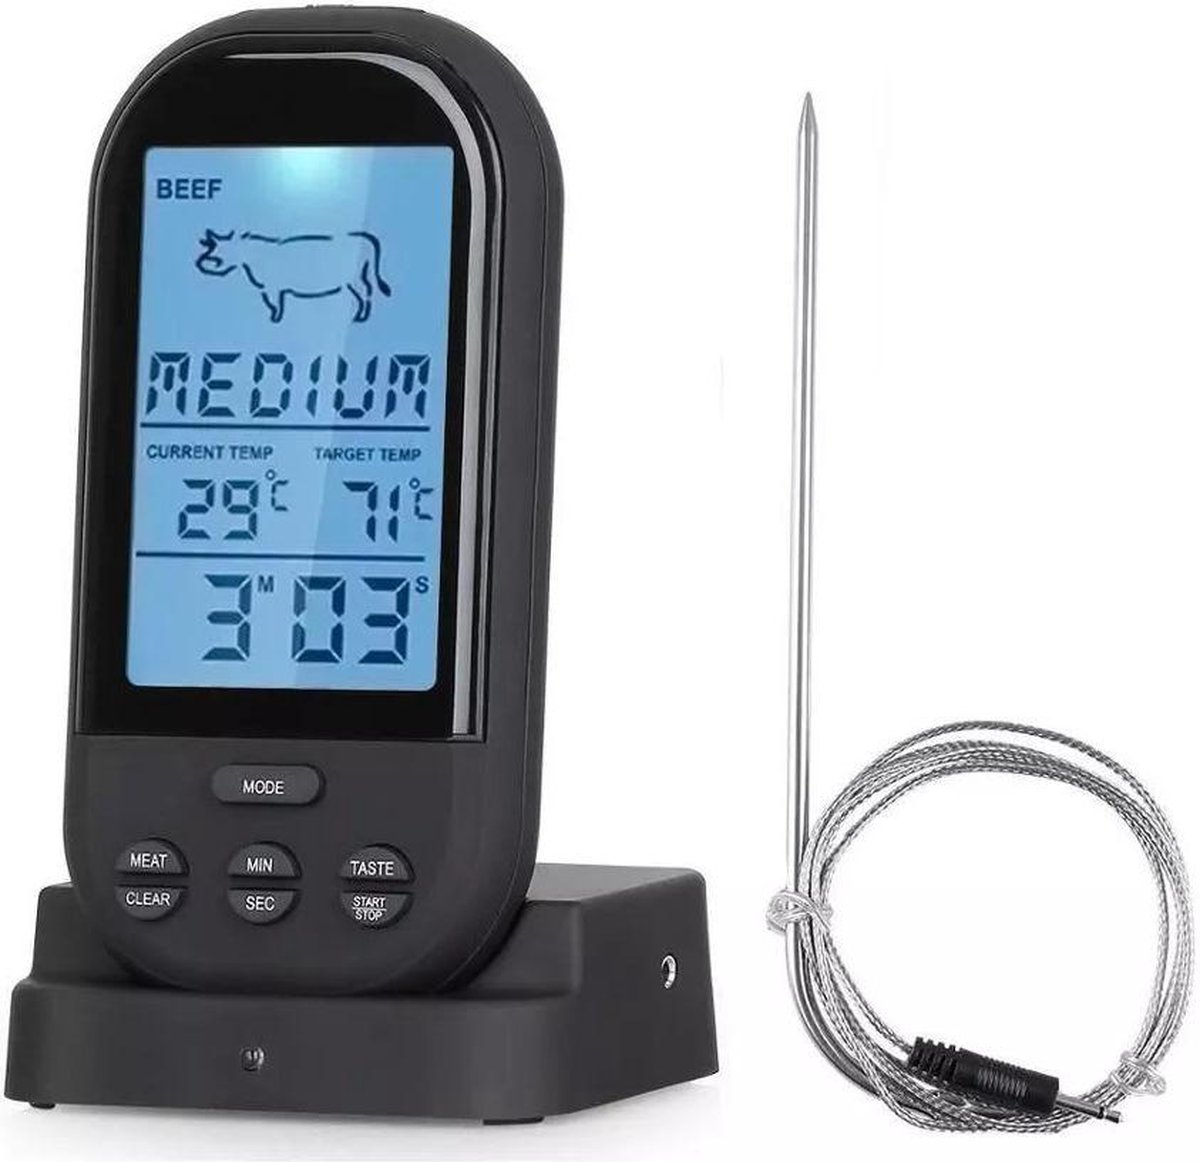 Able & Borret | Vleesthermometer | BBQ thermometer | Kernthermometer | Draadloos | Zwart